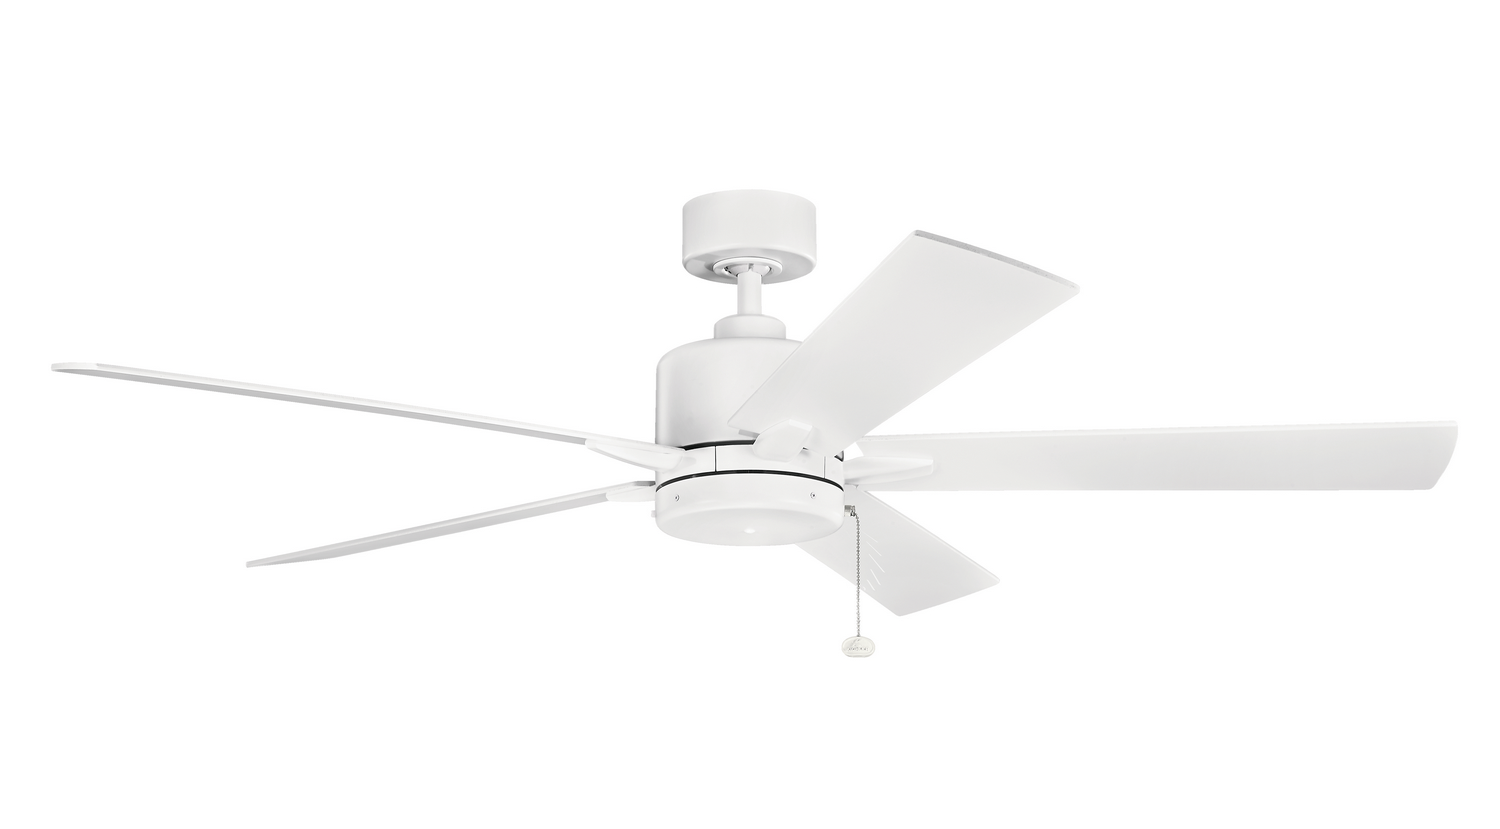 60 inchCeiling Fan from the Bowen collection by Kichler 330243MWH